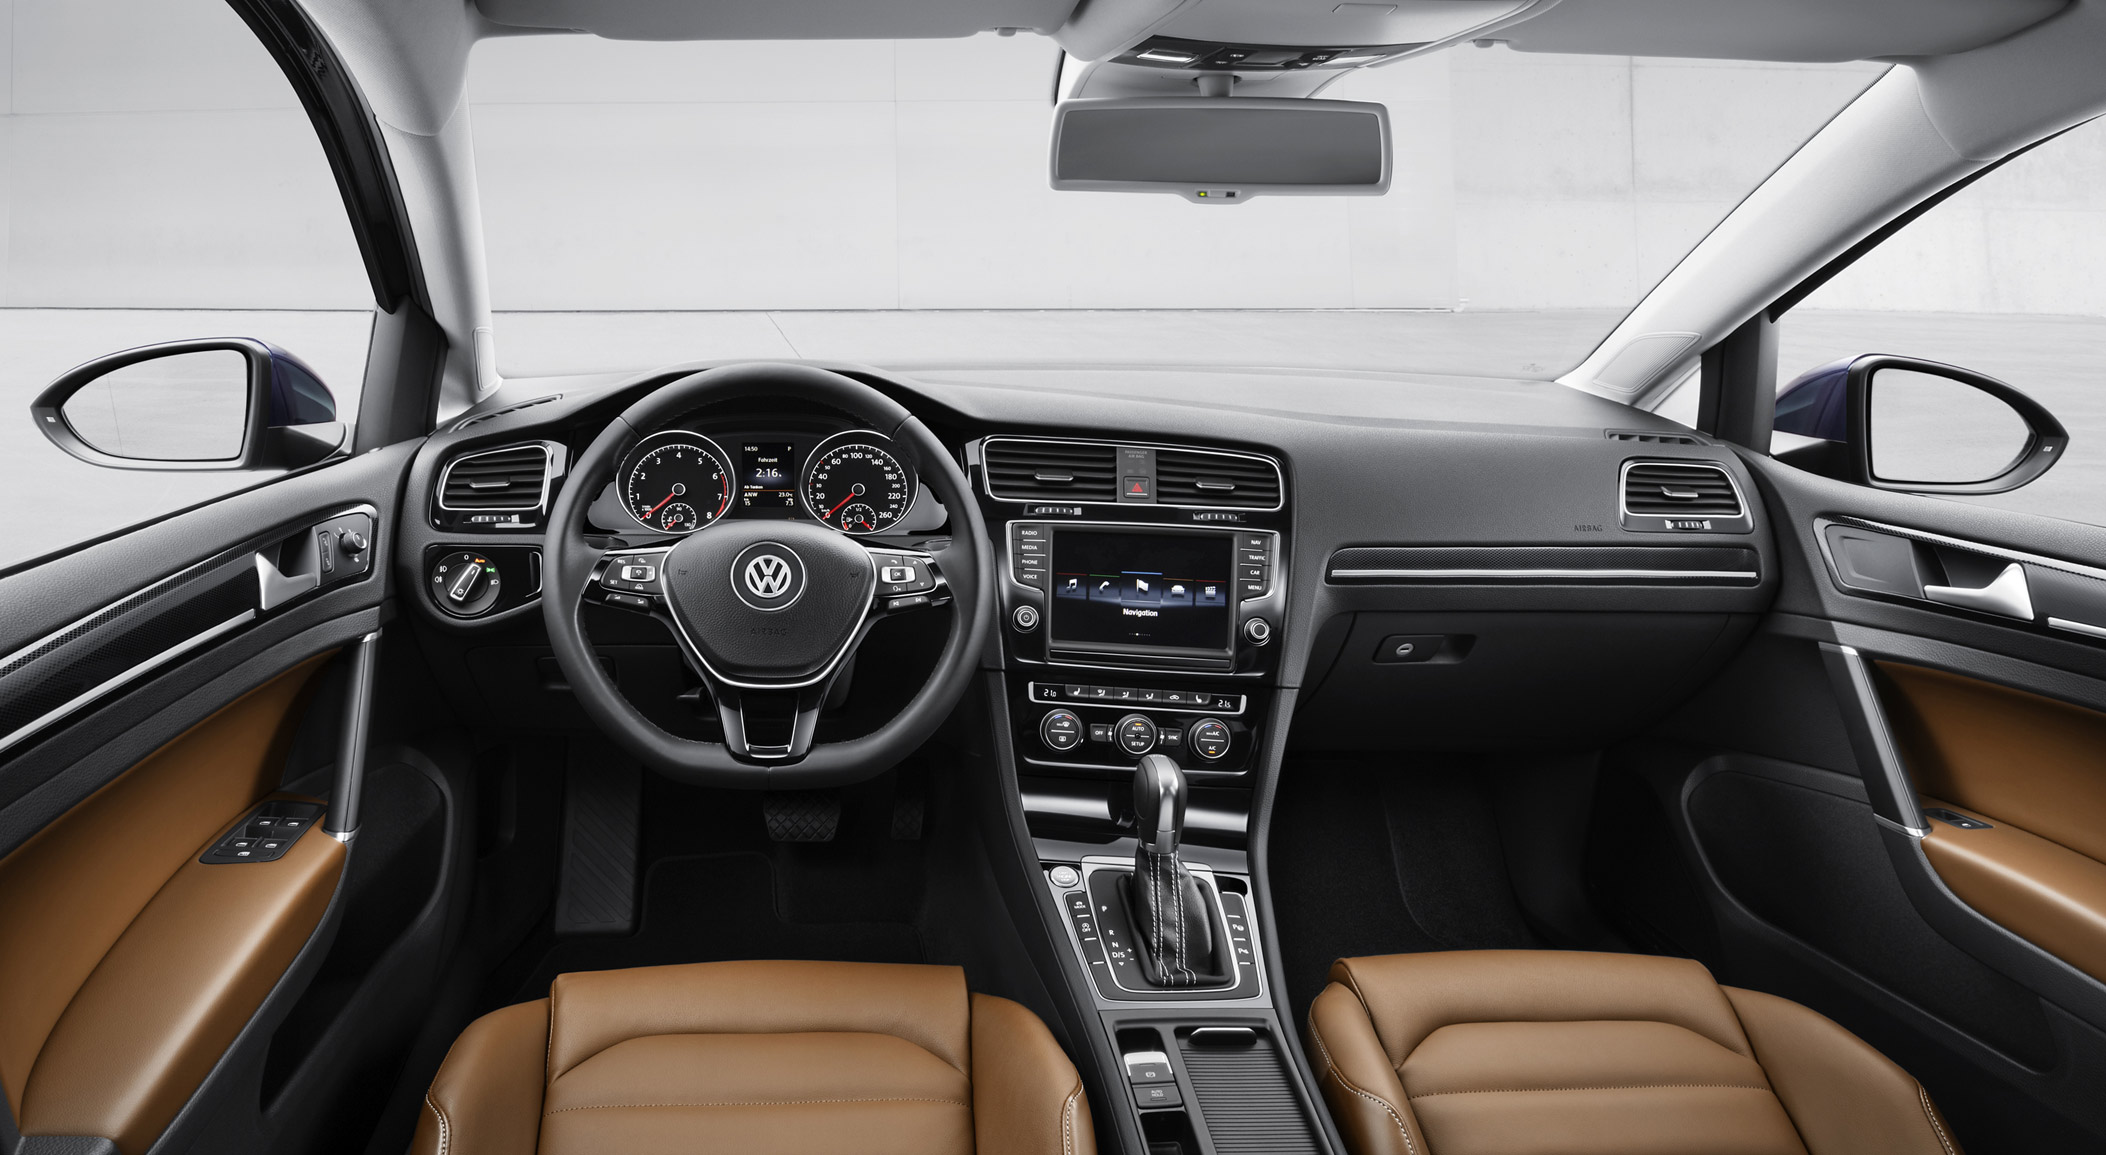 volkswagen-golf-7-interior-3